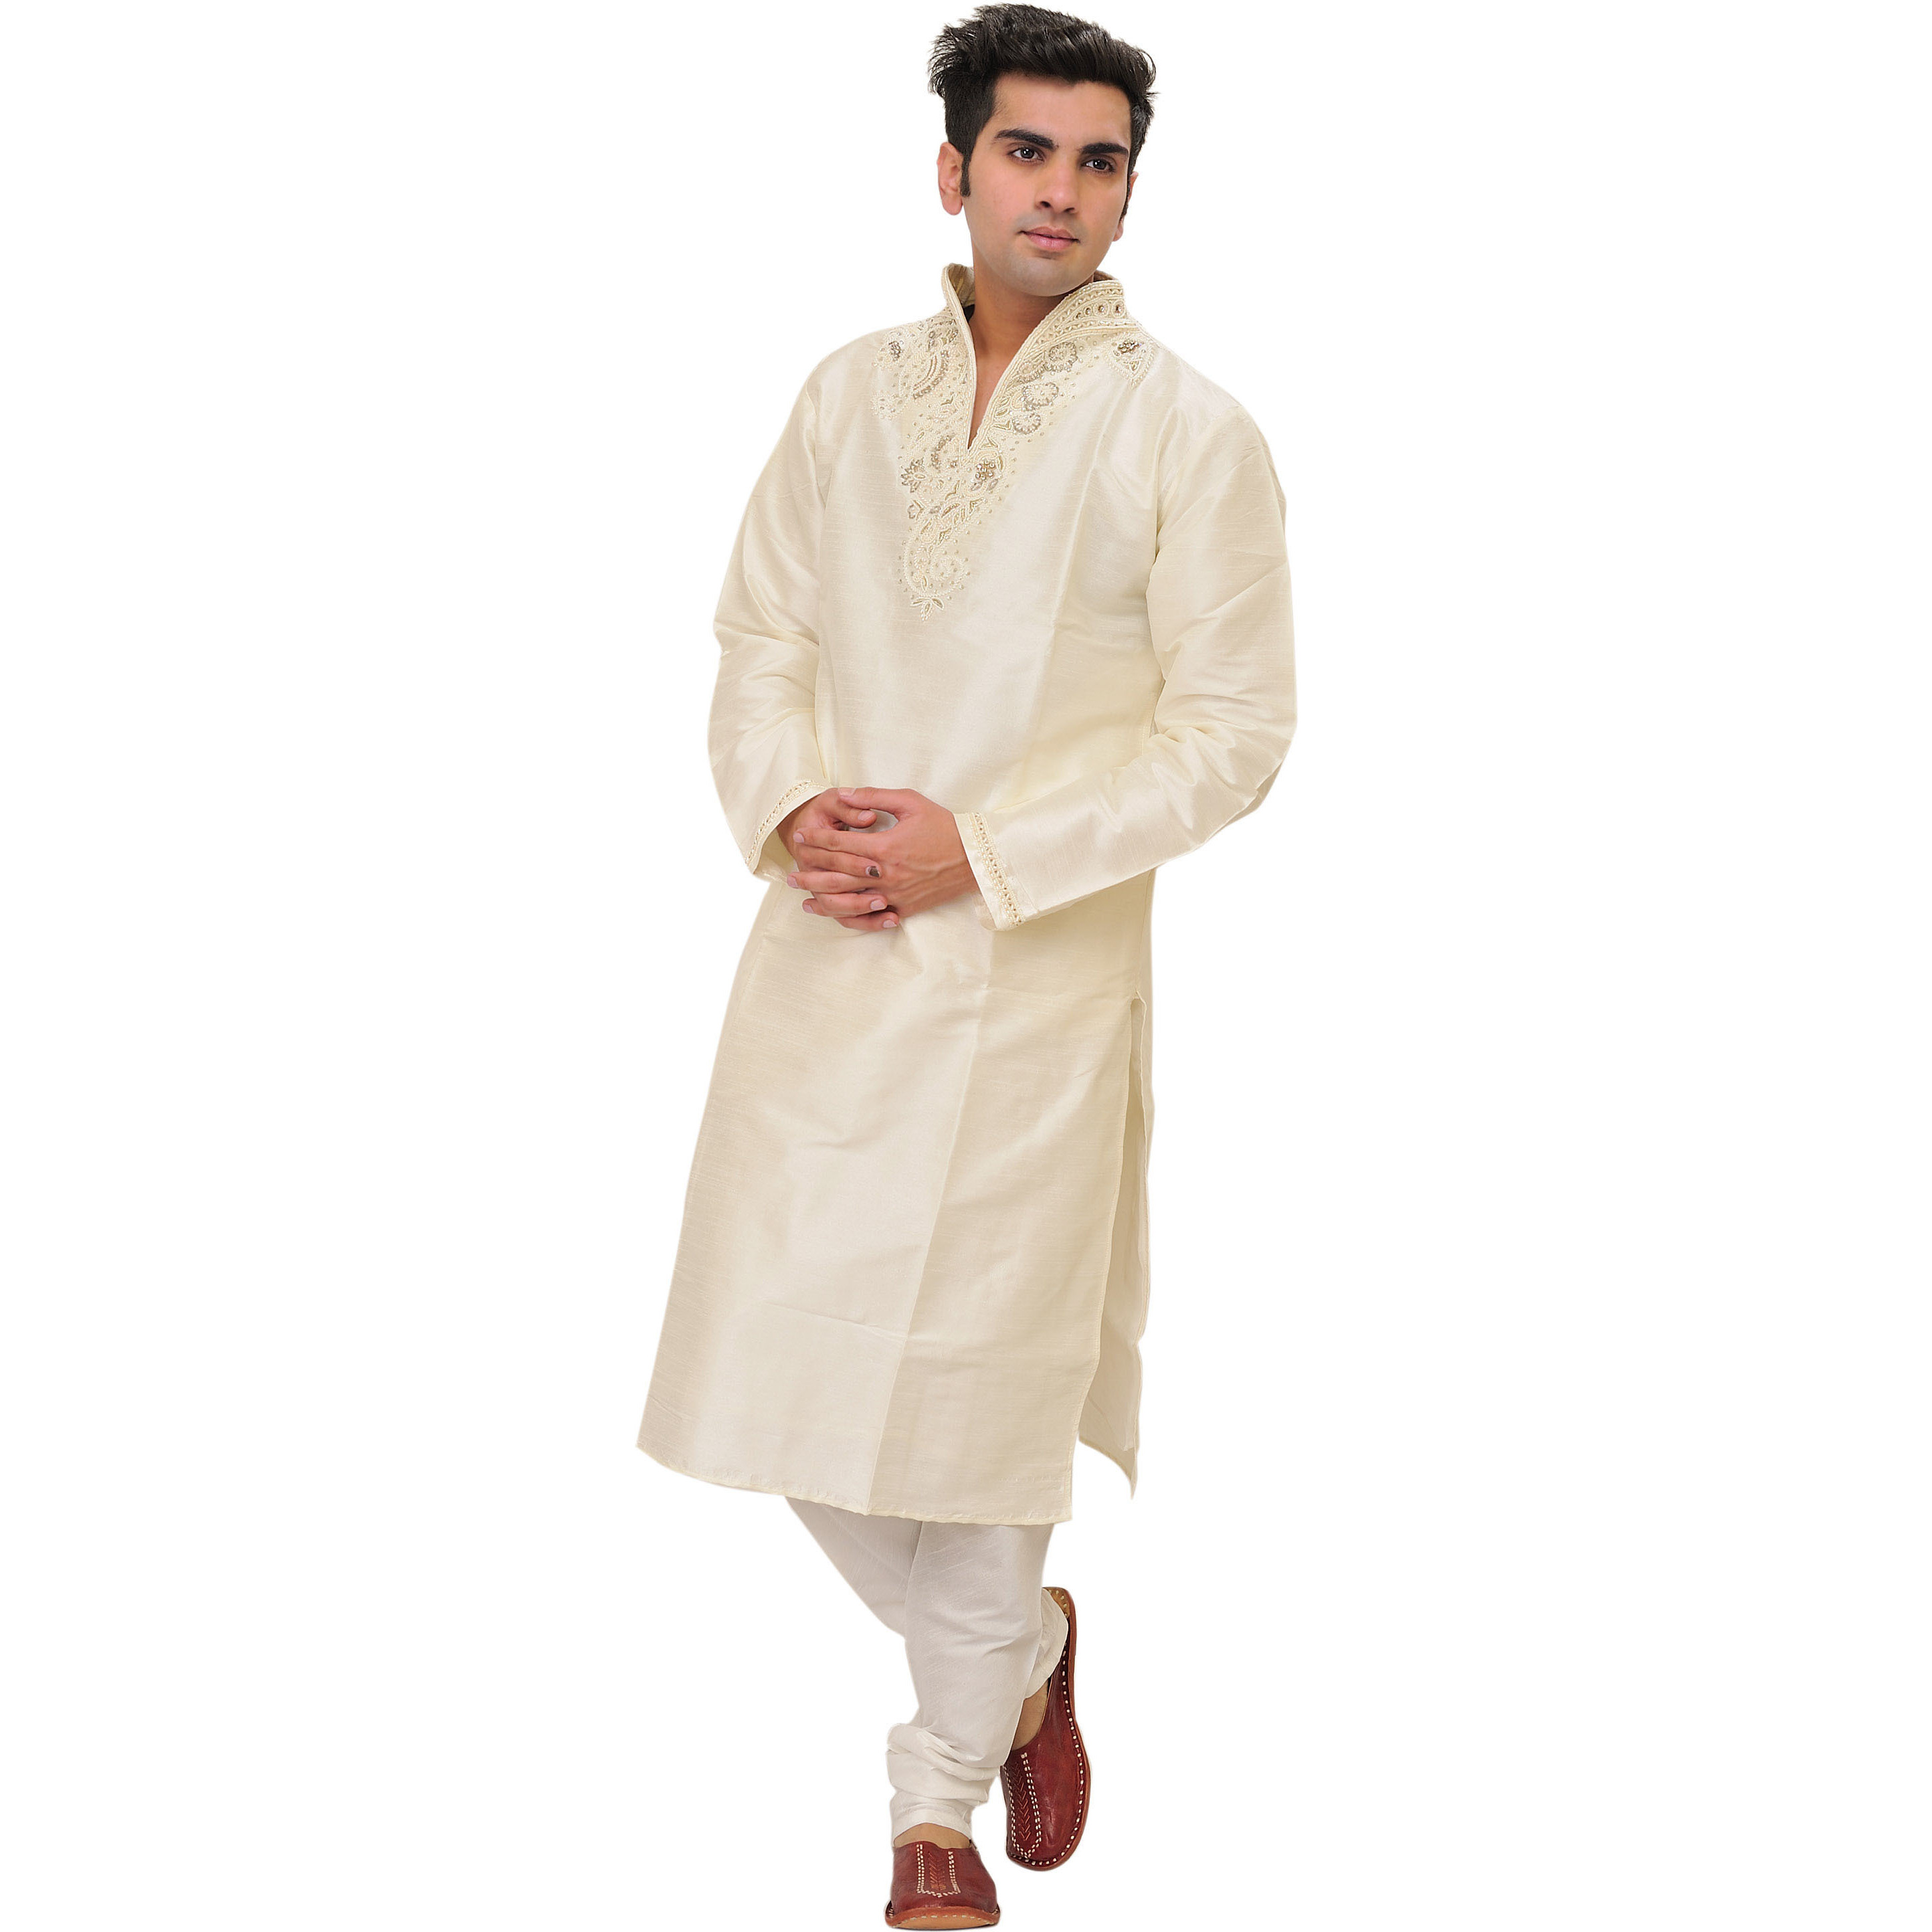 Ivory Wedding Kurta Pajama Set with Hand-Embroidered Pearls on Neck